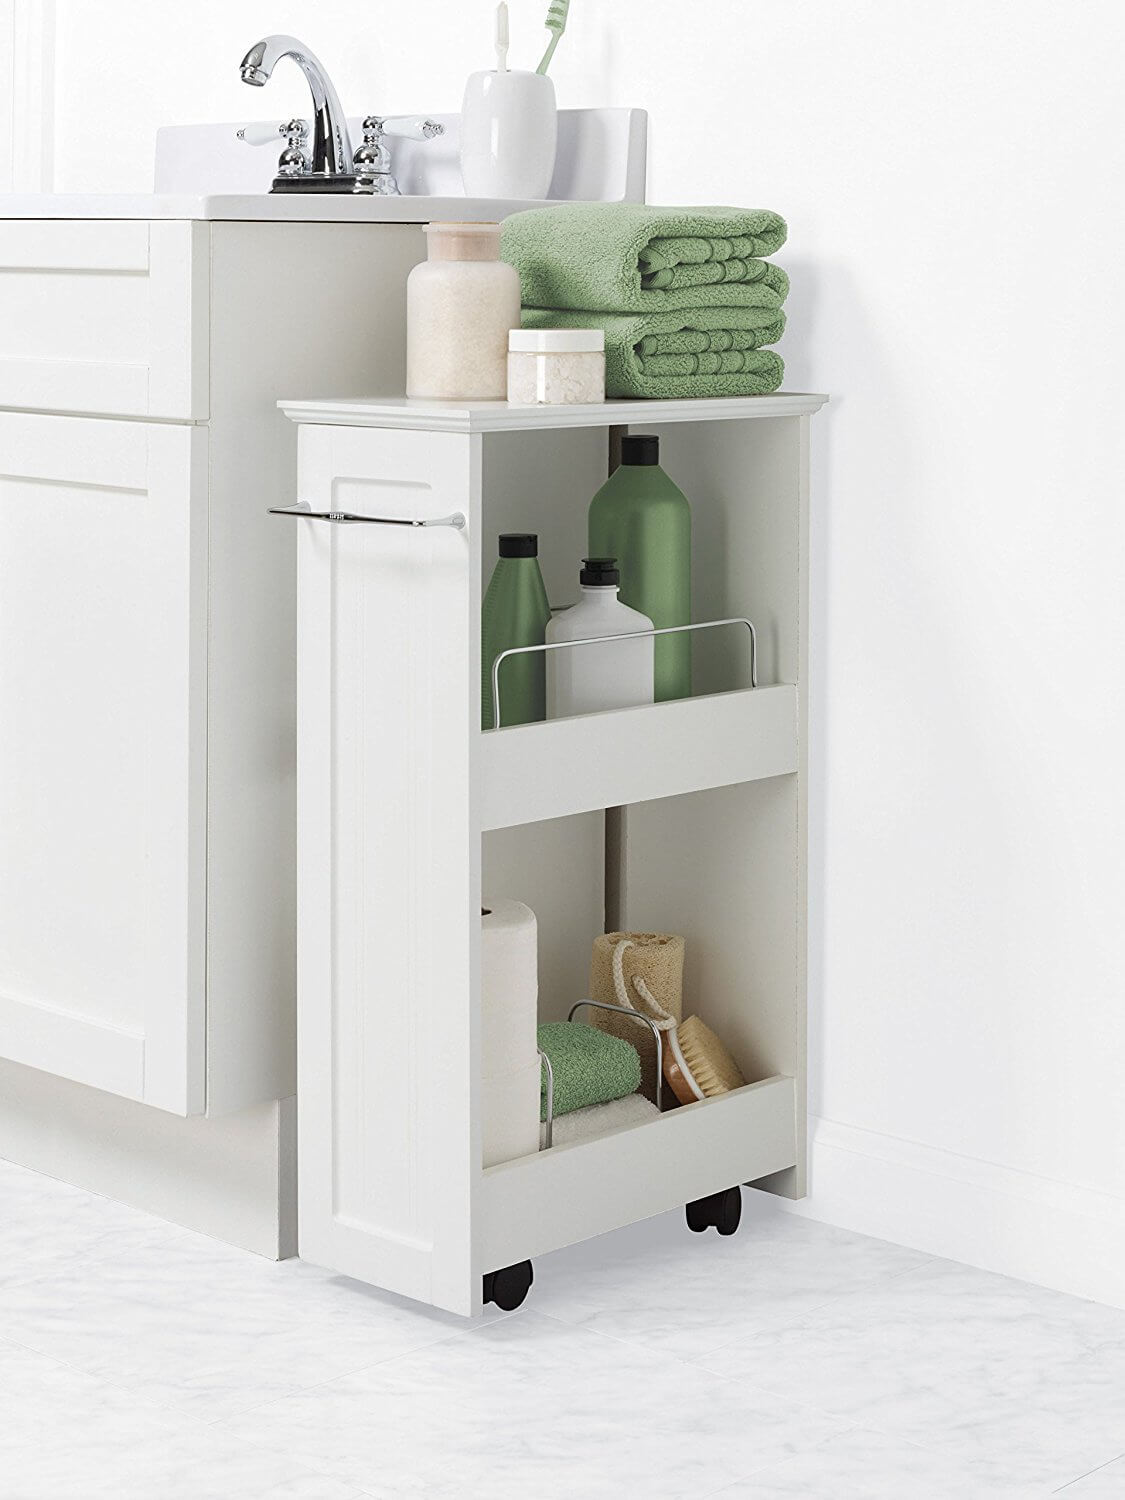 Zenna Home Slimline Rolling Storage Shelf & 26 Best Bathroom Storage Cabinet Ideas for 2018